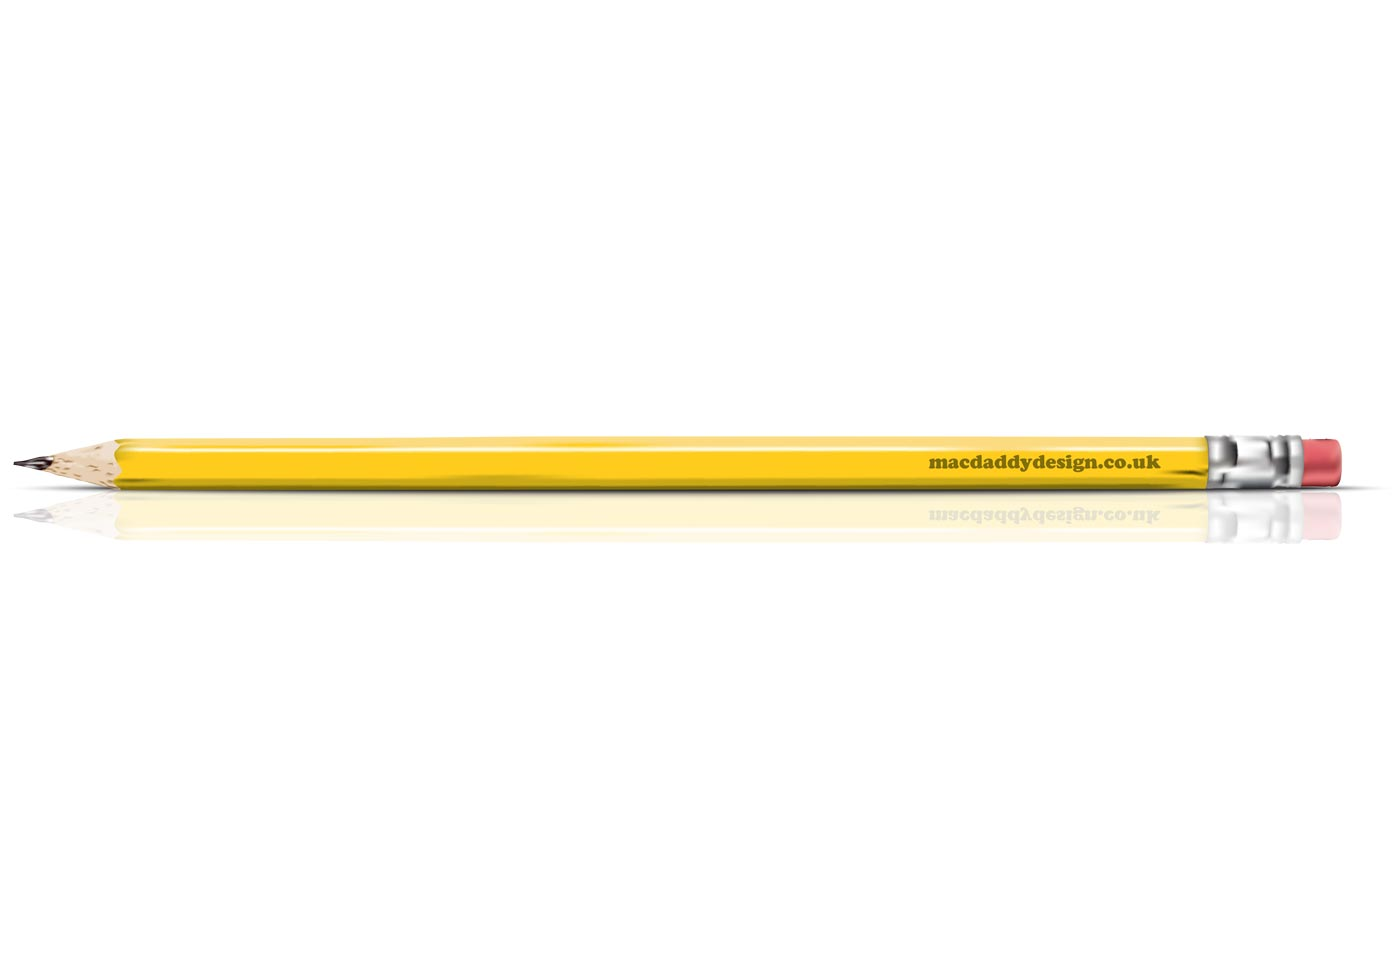 2d pencil download free vector art stock graphics images